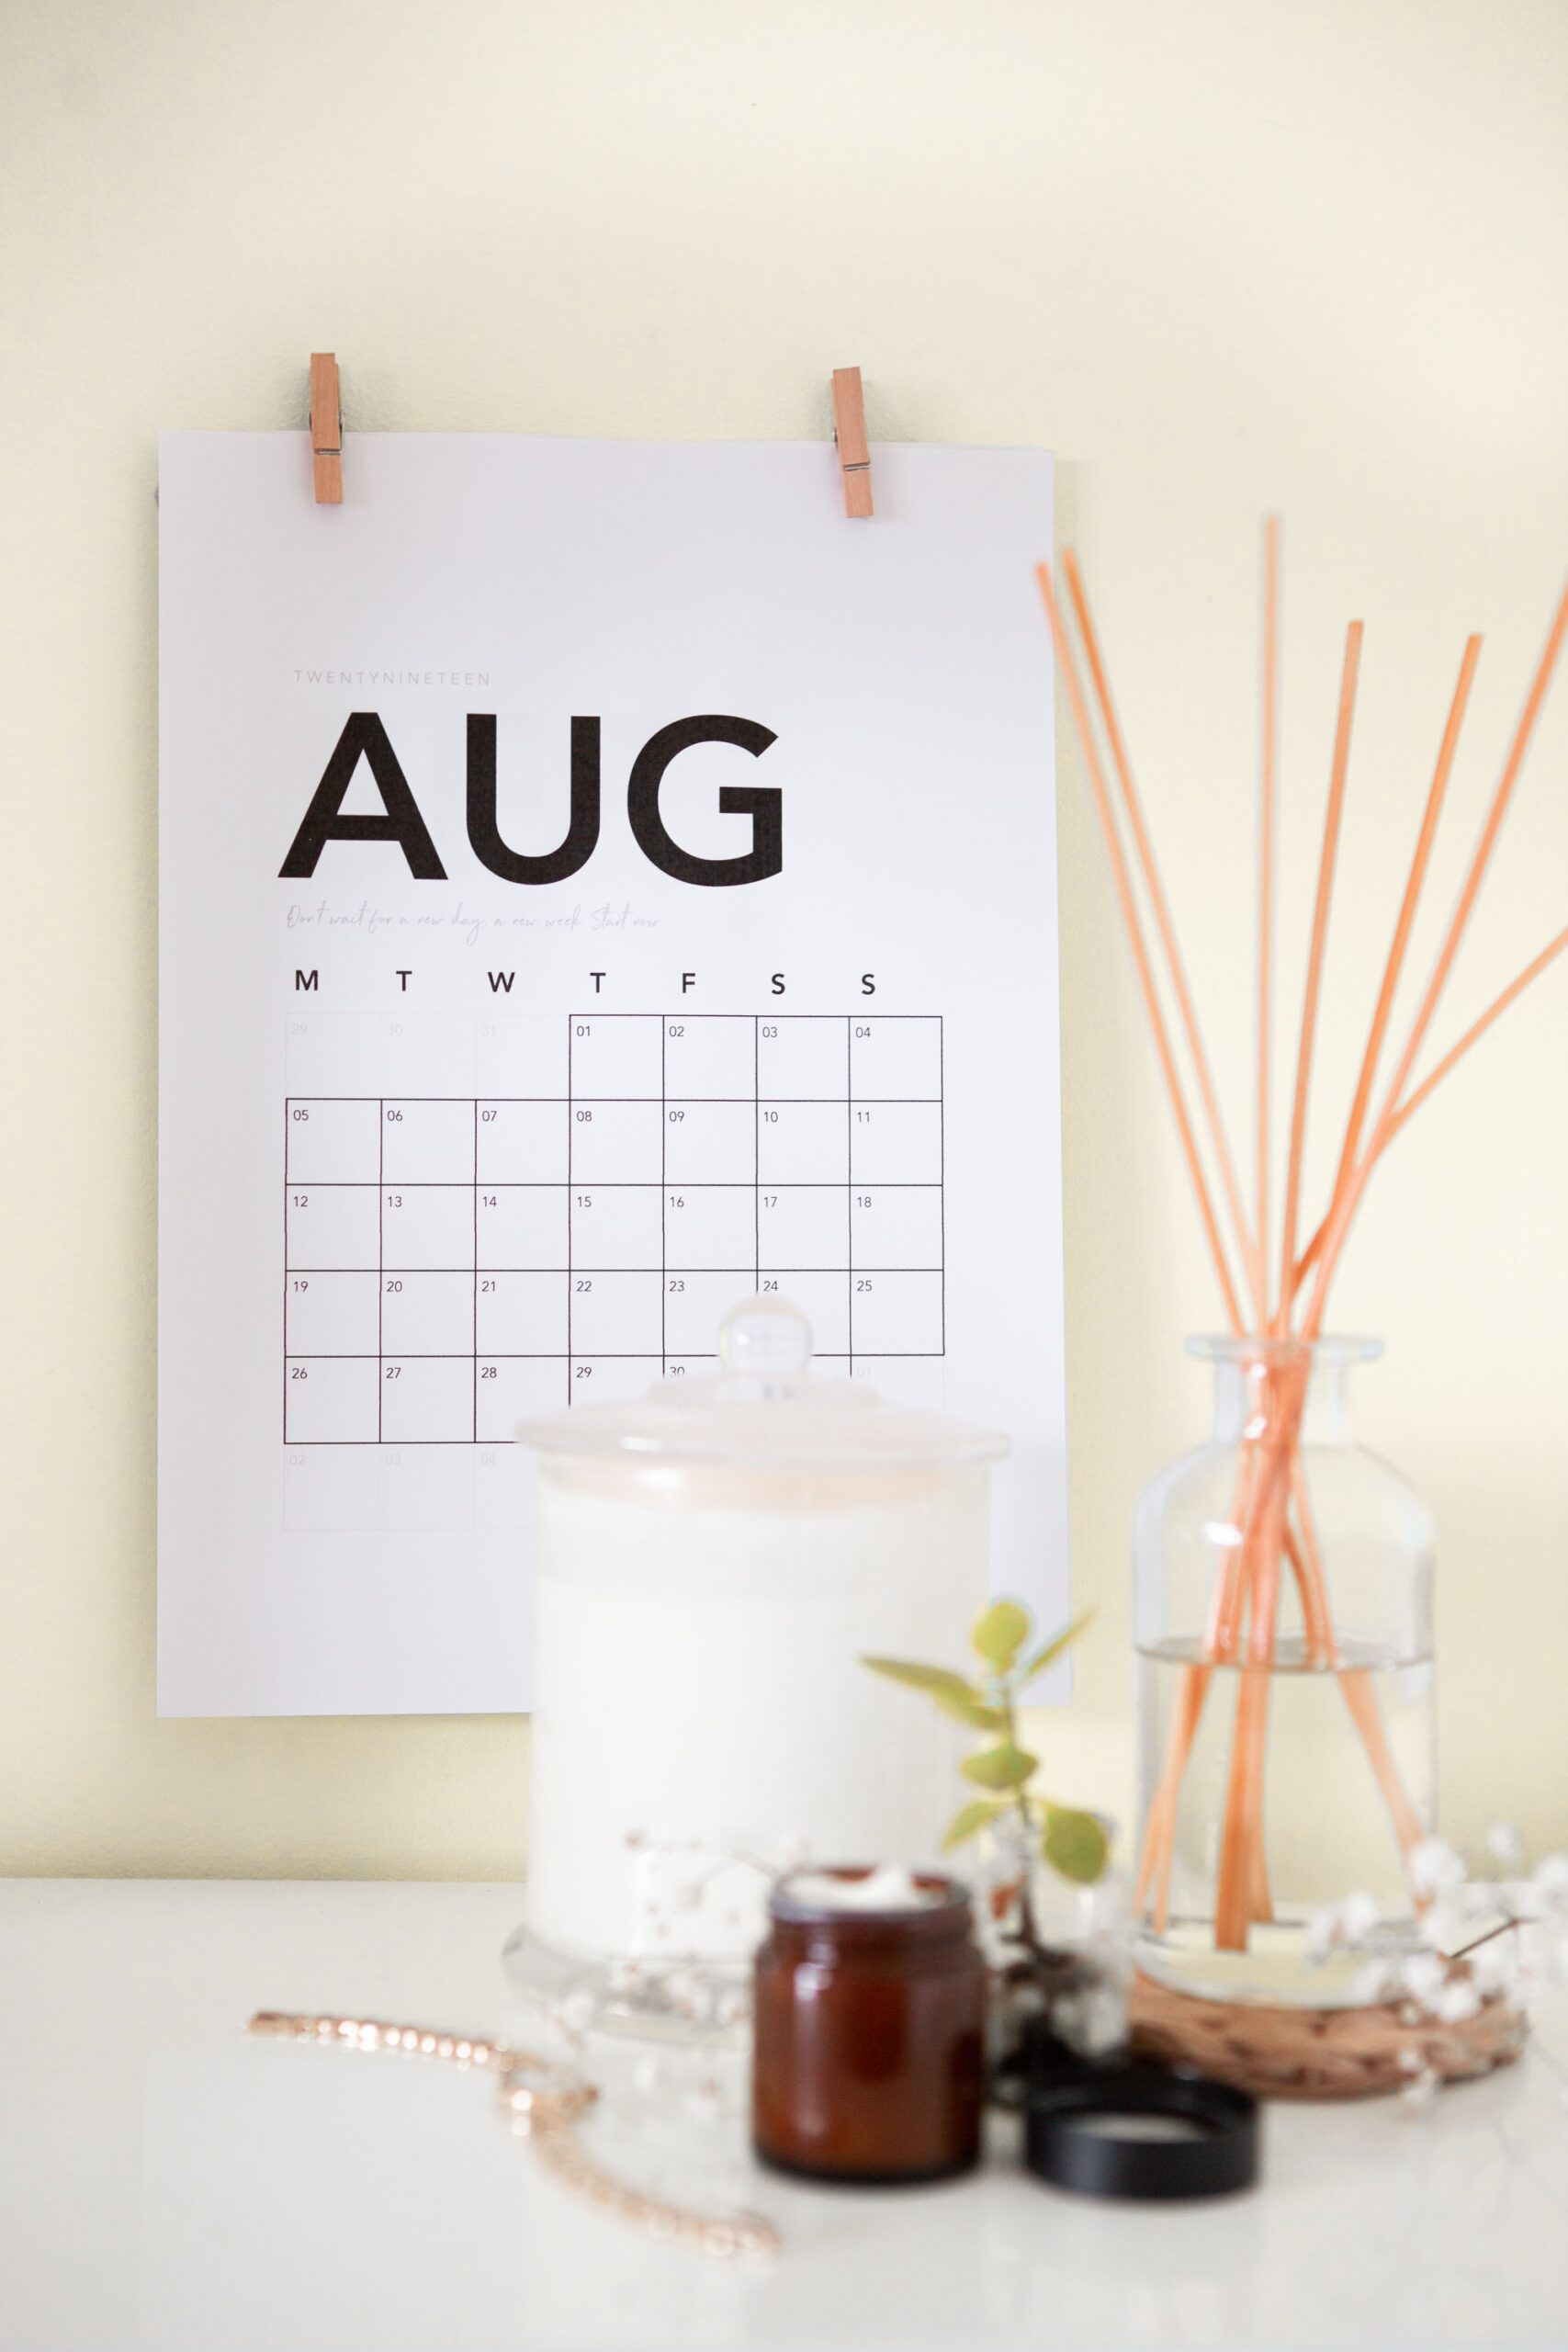 Day 62: Altruistic August, Improving Sleep and Reducing Stress (TYOH, Aug 2021)